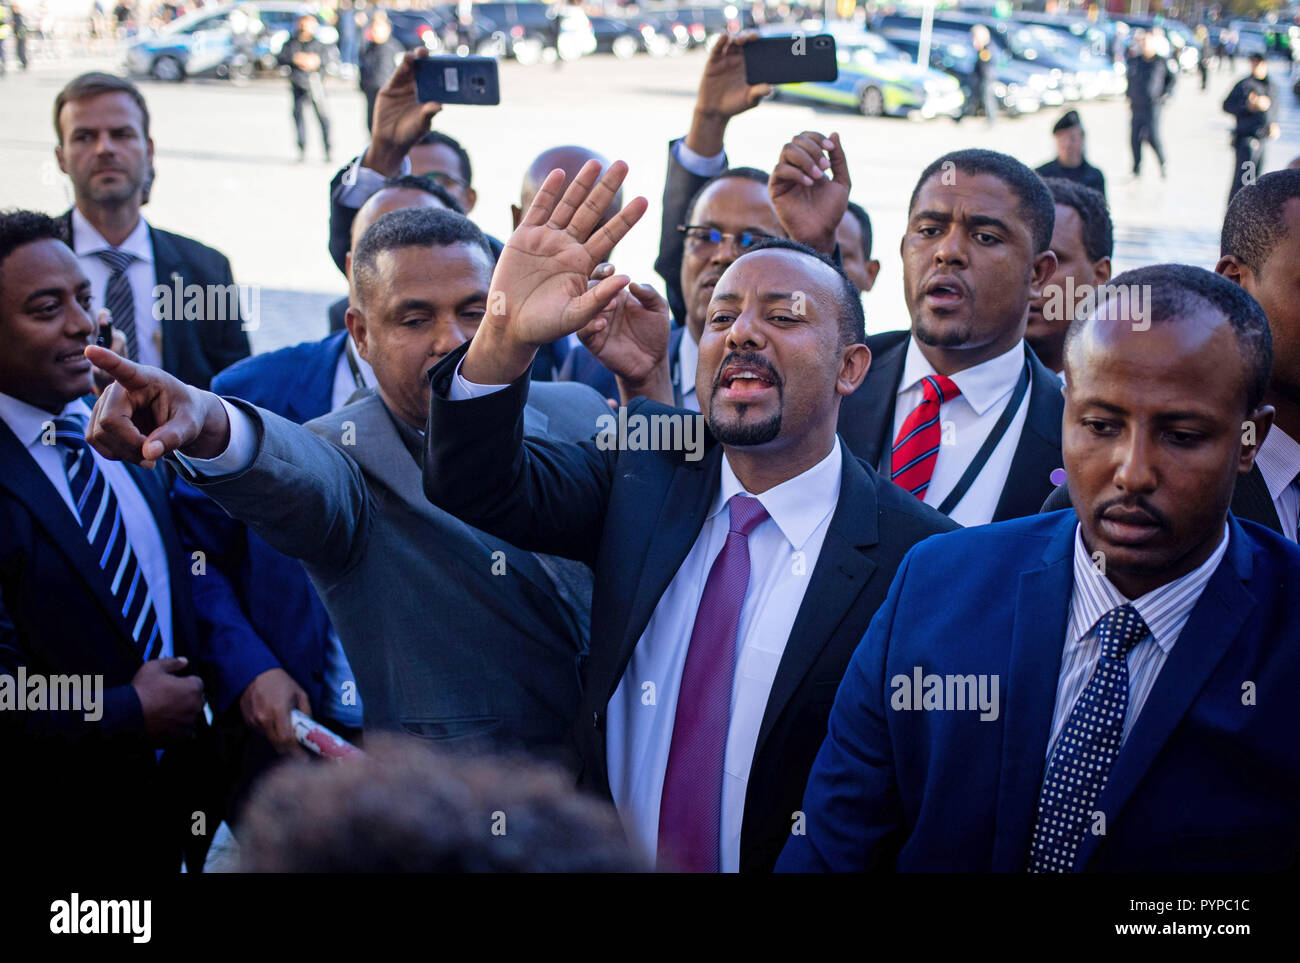 Berlin, Germany. 30th Oct, 2018. Abiy Ahmed Ali, Prime Minister of the Democratic Federal Republic of Ethiopia, waves to his supporters on Pariser Platz in front of the Brandenburg Gate. Eleven heads of state and government meet in the capital for the summit meeting. It is about an initiative for more private investment in Africa, which Merkel launched last year as President of the Group of Leading Economic Powers (G20). Credit: Kay Nietfeld/dpa/Alamy Live News - Stock Image